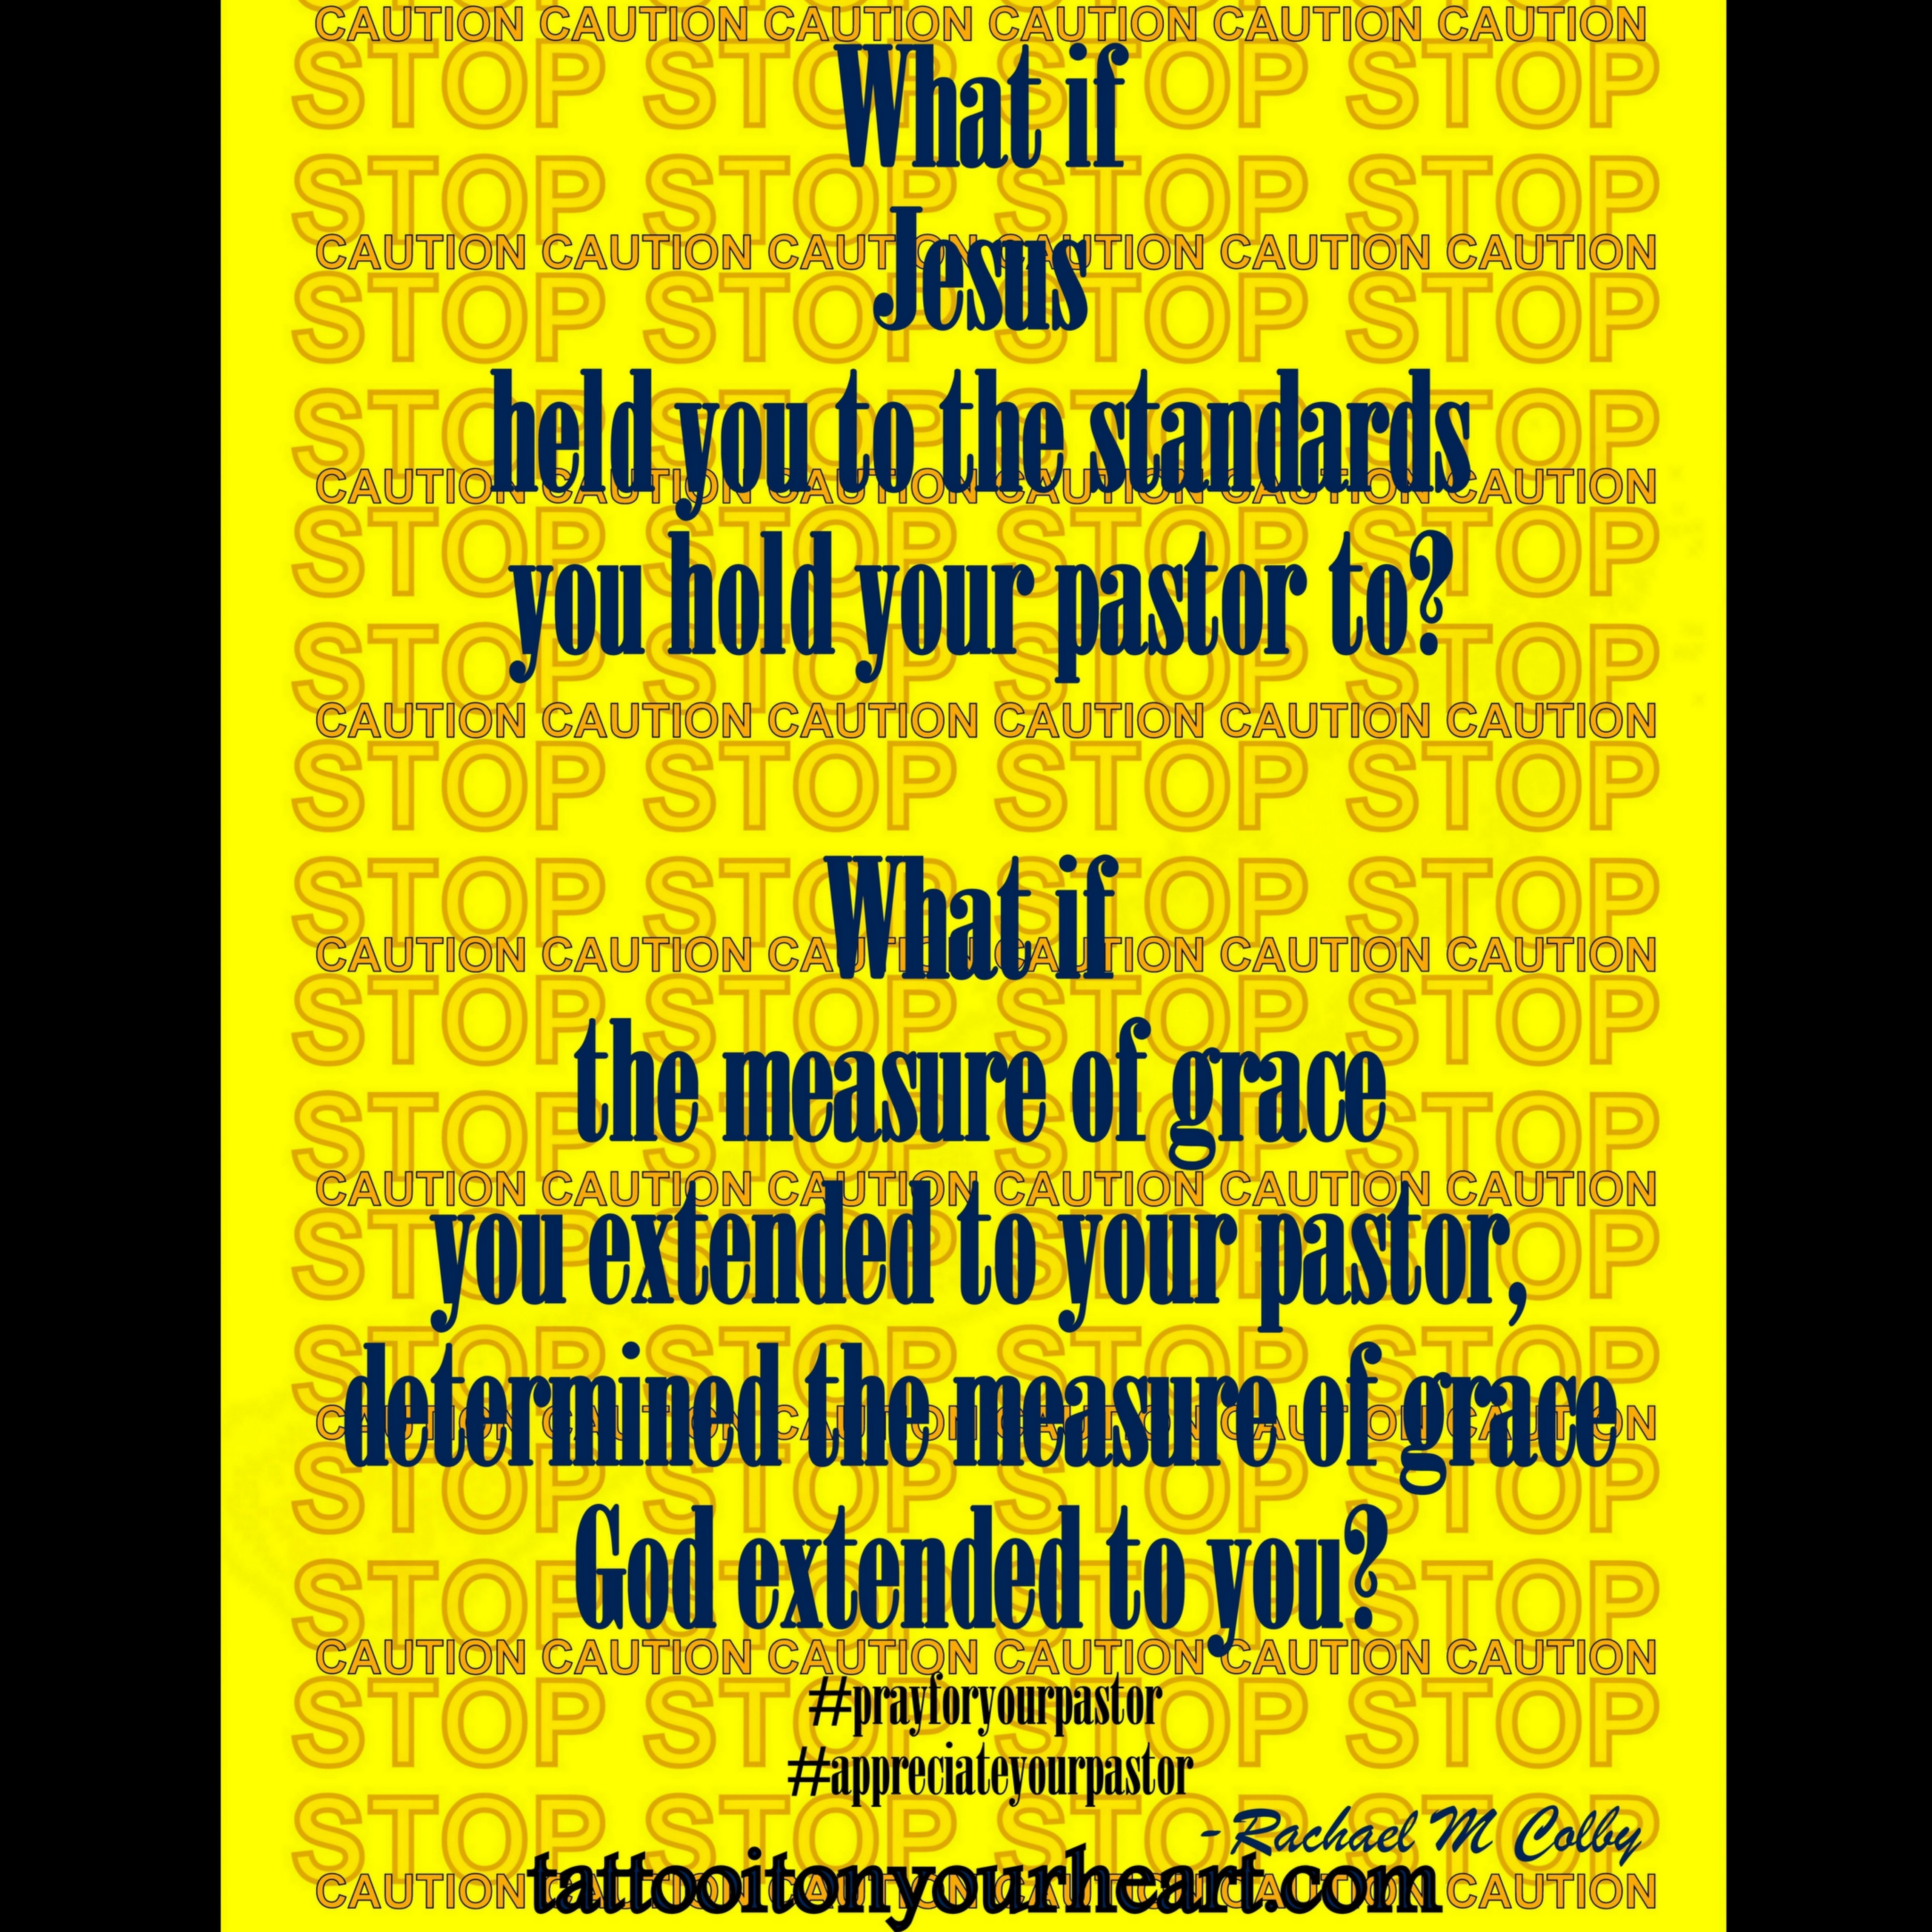 rachael_m_colby_tattoo_it_on_your_heart_what-_if-jesus-_held-_you_to_the_standards